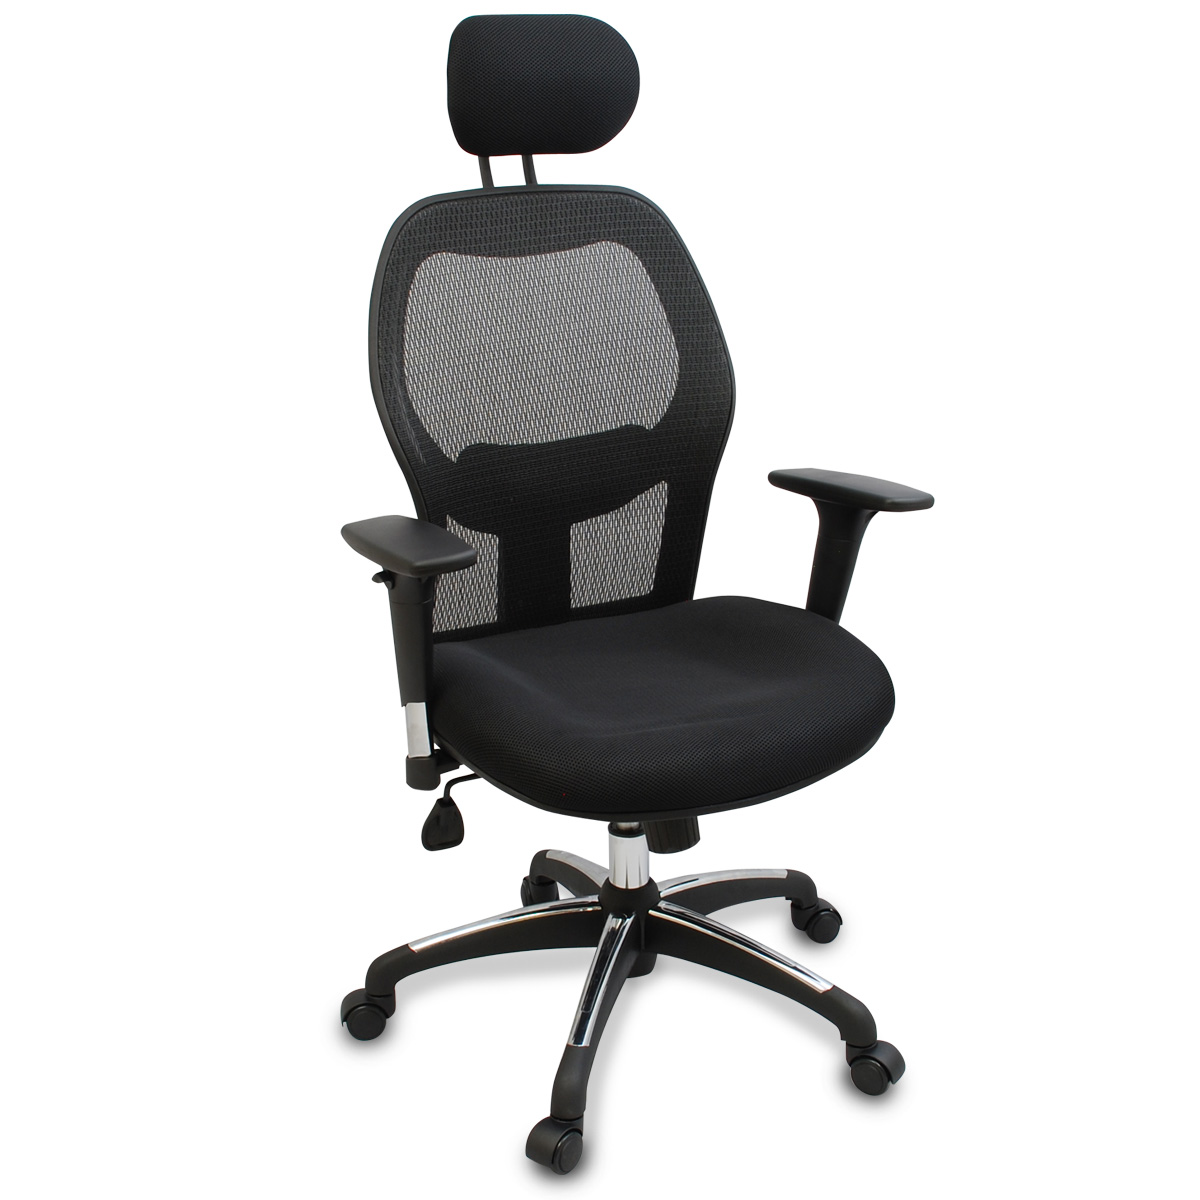 ergonomic chair no armrests hammock stand home depot new mesh reclining office w scuff rubber wheels